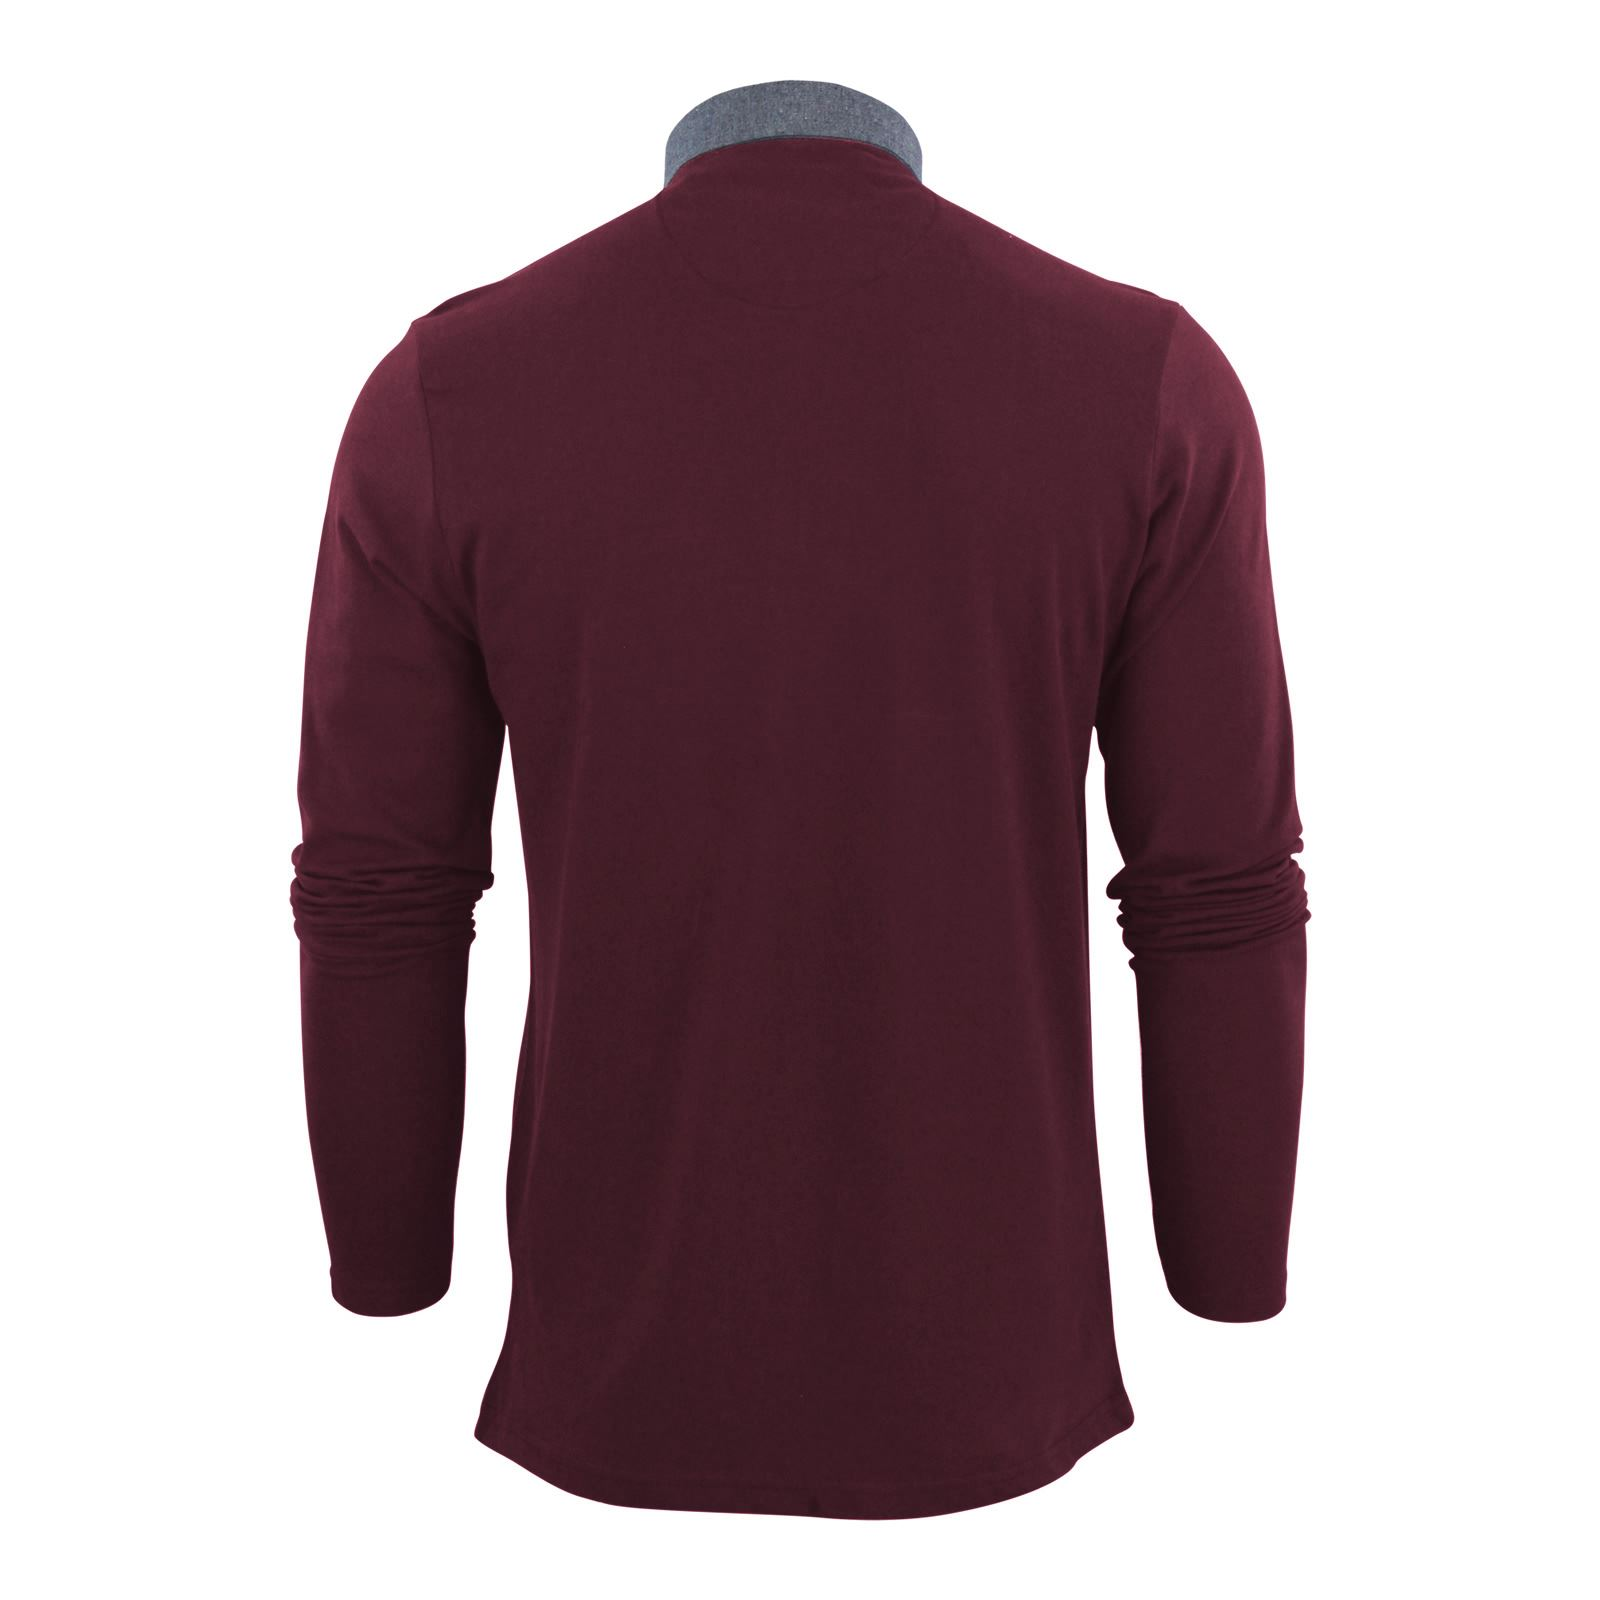 Mens-Polo-Shirt-Brave-Soul-Long-Sleeve-Collared-Top-In-Various-Styles thumbnail 45